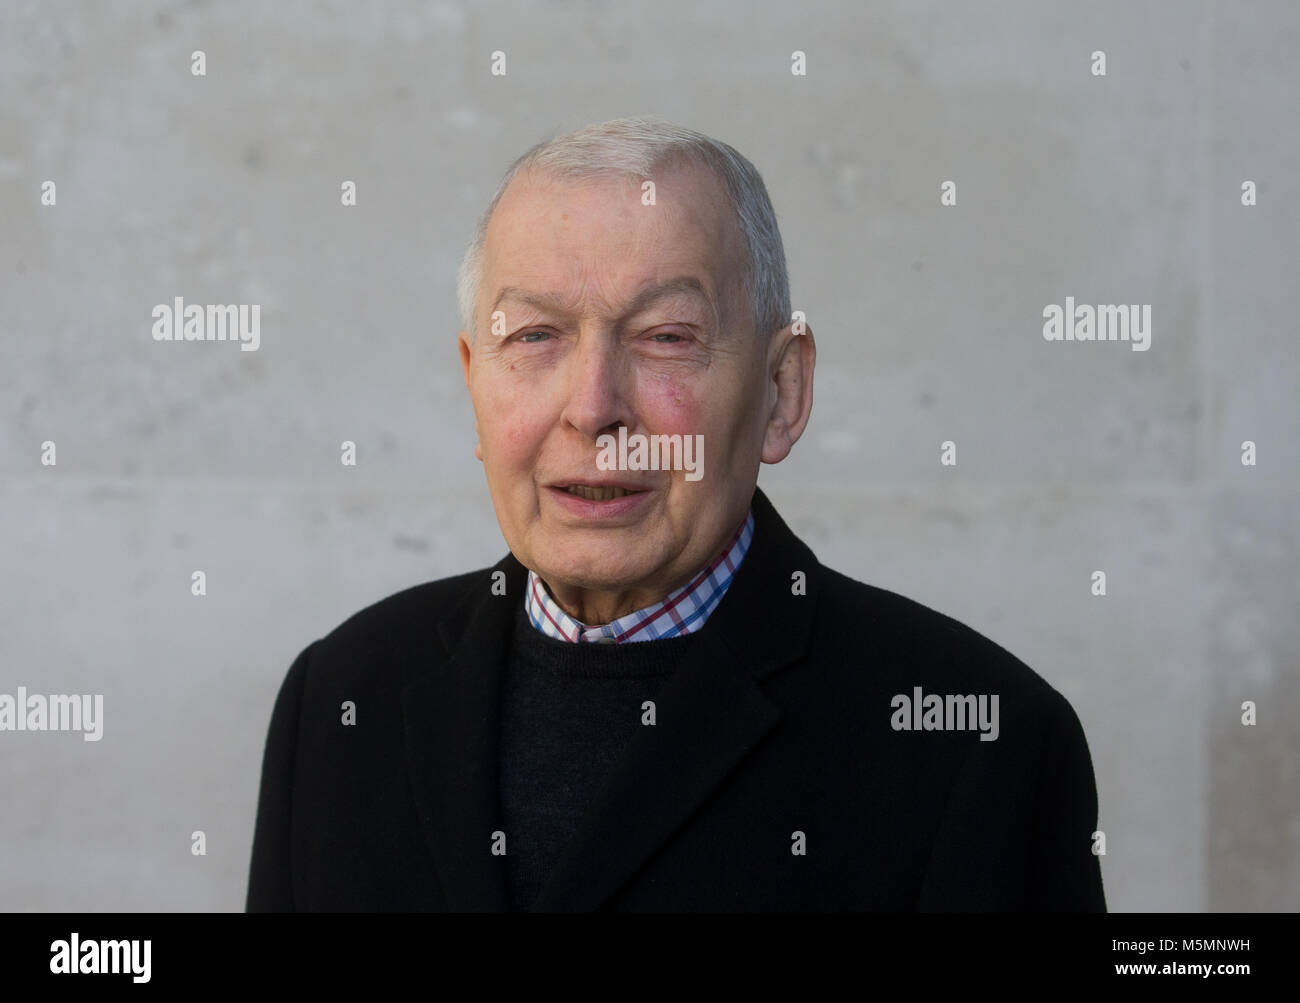 Labour MP for Birkenhead and Chairman of the Work and Pensions Committee, Frank Field arrives at the BBC studios Stock Photo